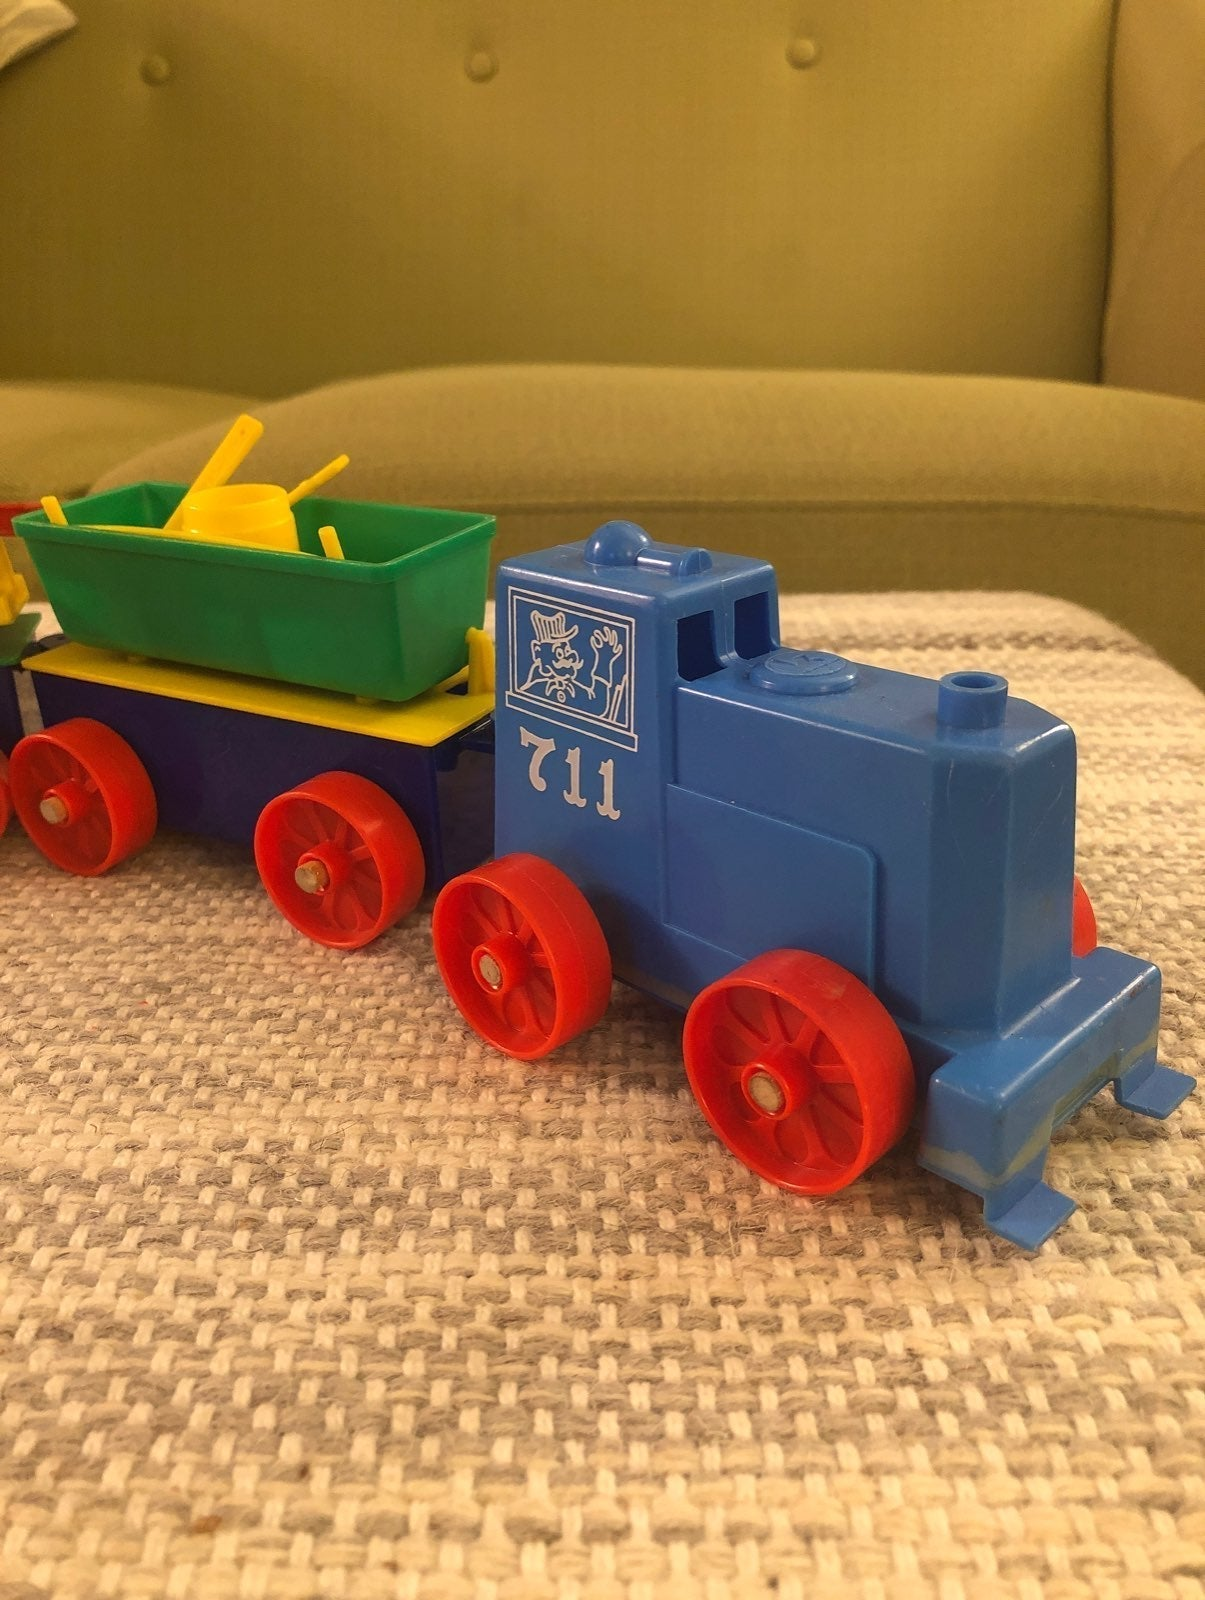 VNTG Plastic Toy Train Set